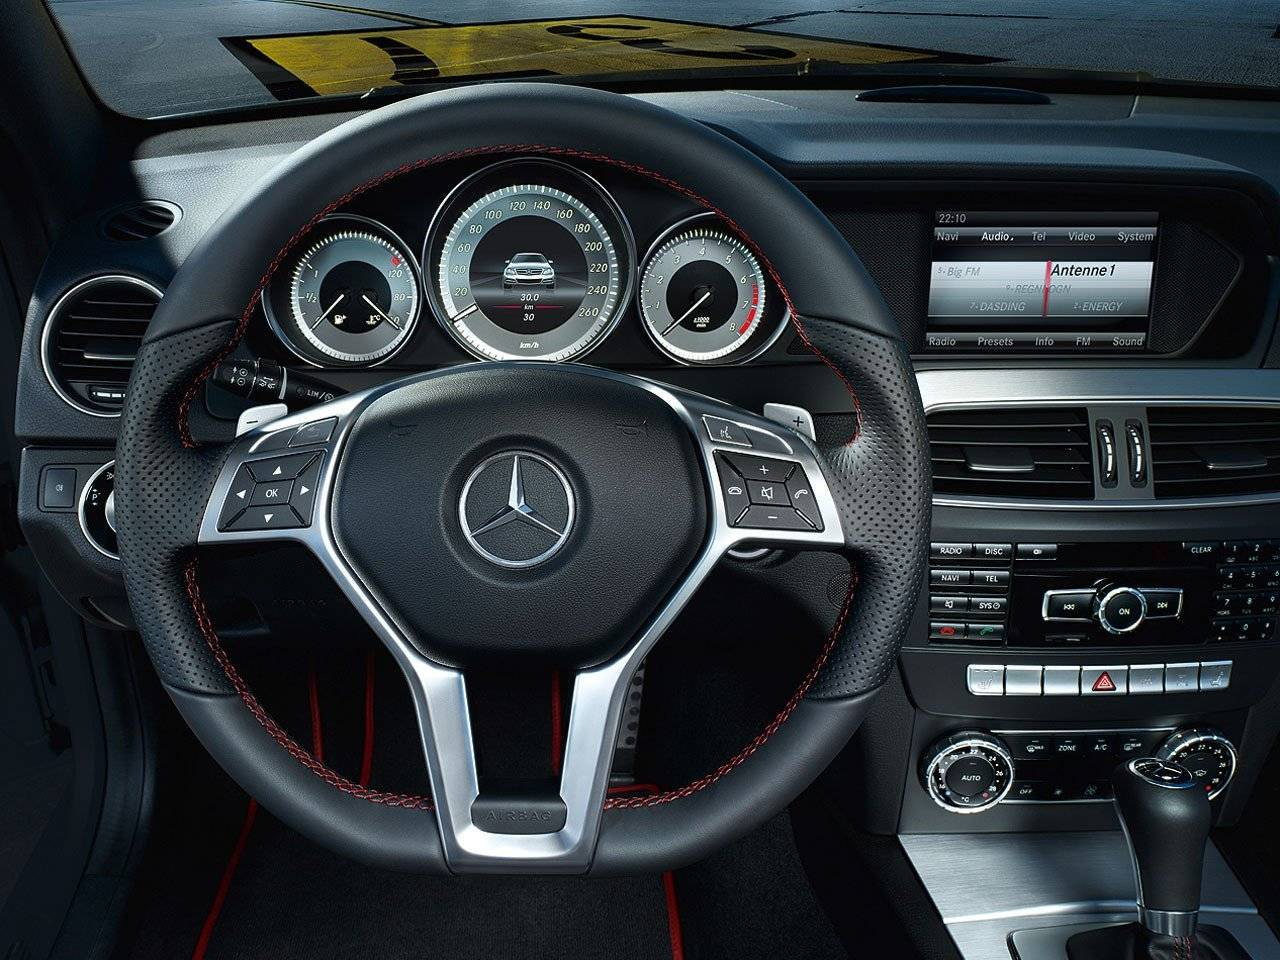 Mercedes c klasse coup sport uitgerust met amg dna for Interieur mercedes c klasse